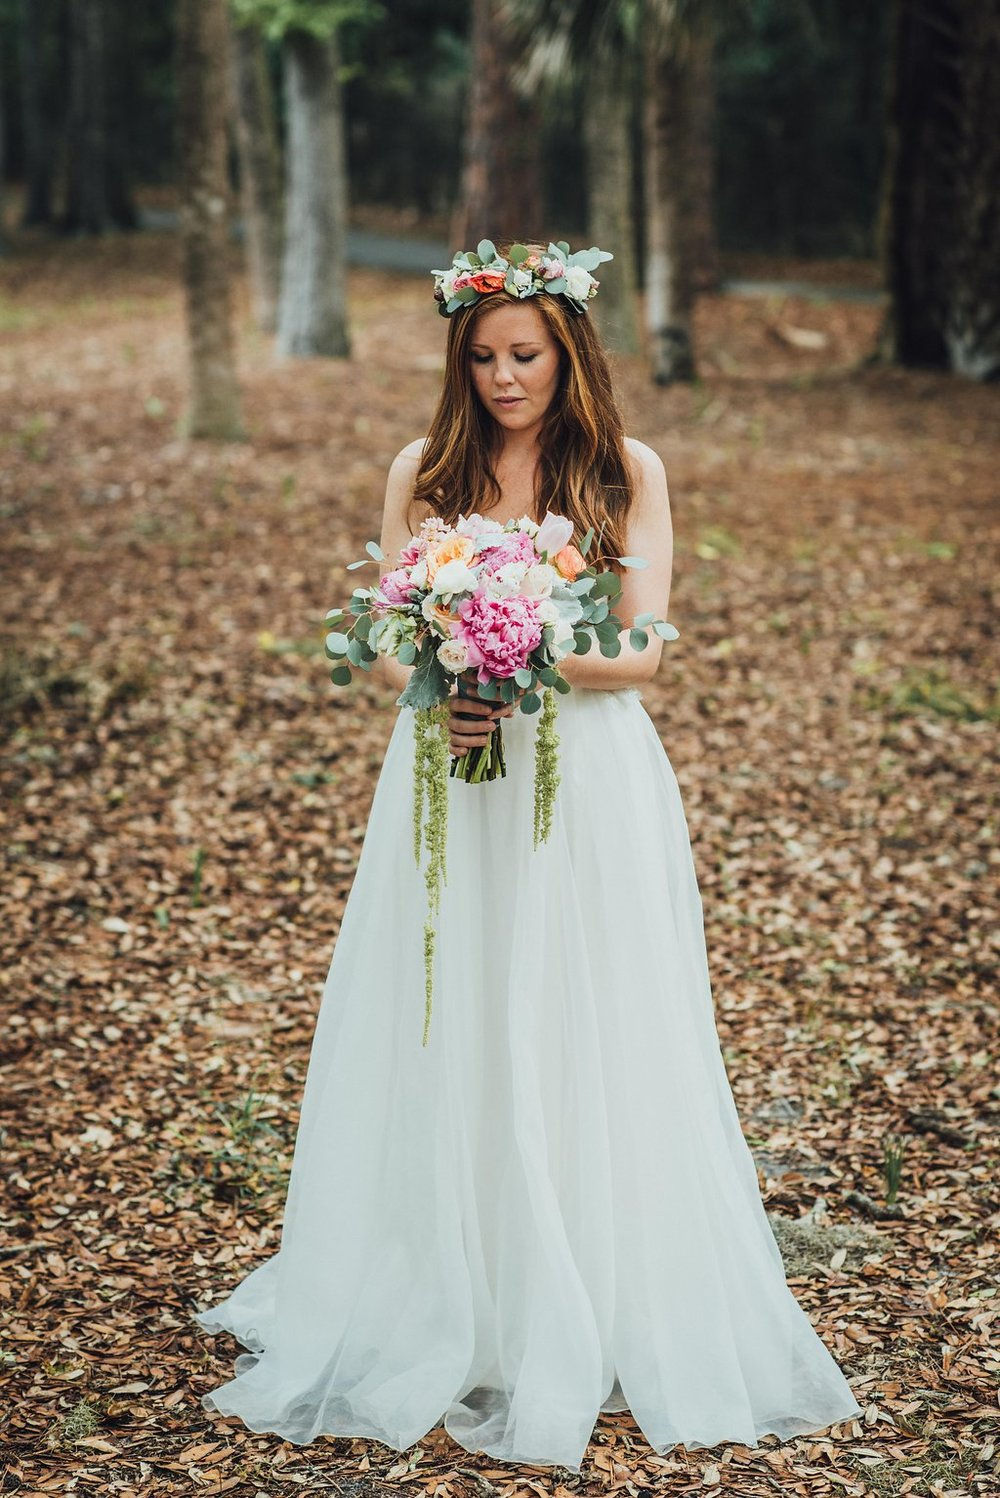 Urban-Poppy-Southern-Wedding-Mallory-and-Justin-photography-ivory-and-beau-bridal-boutique-sarah-seven-marion-boho-bride-indie-bride-indie-wedding-dress-savannah-weddings-hilton-head-weddings-beach-wedding-1.jpg